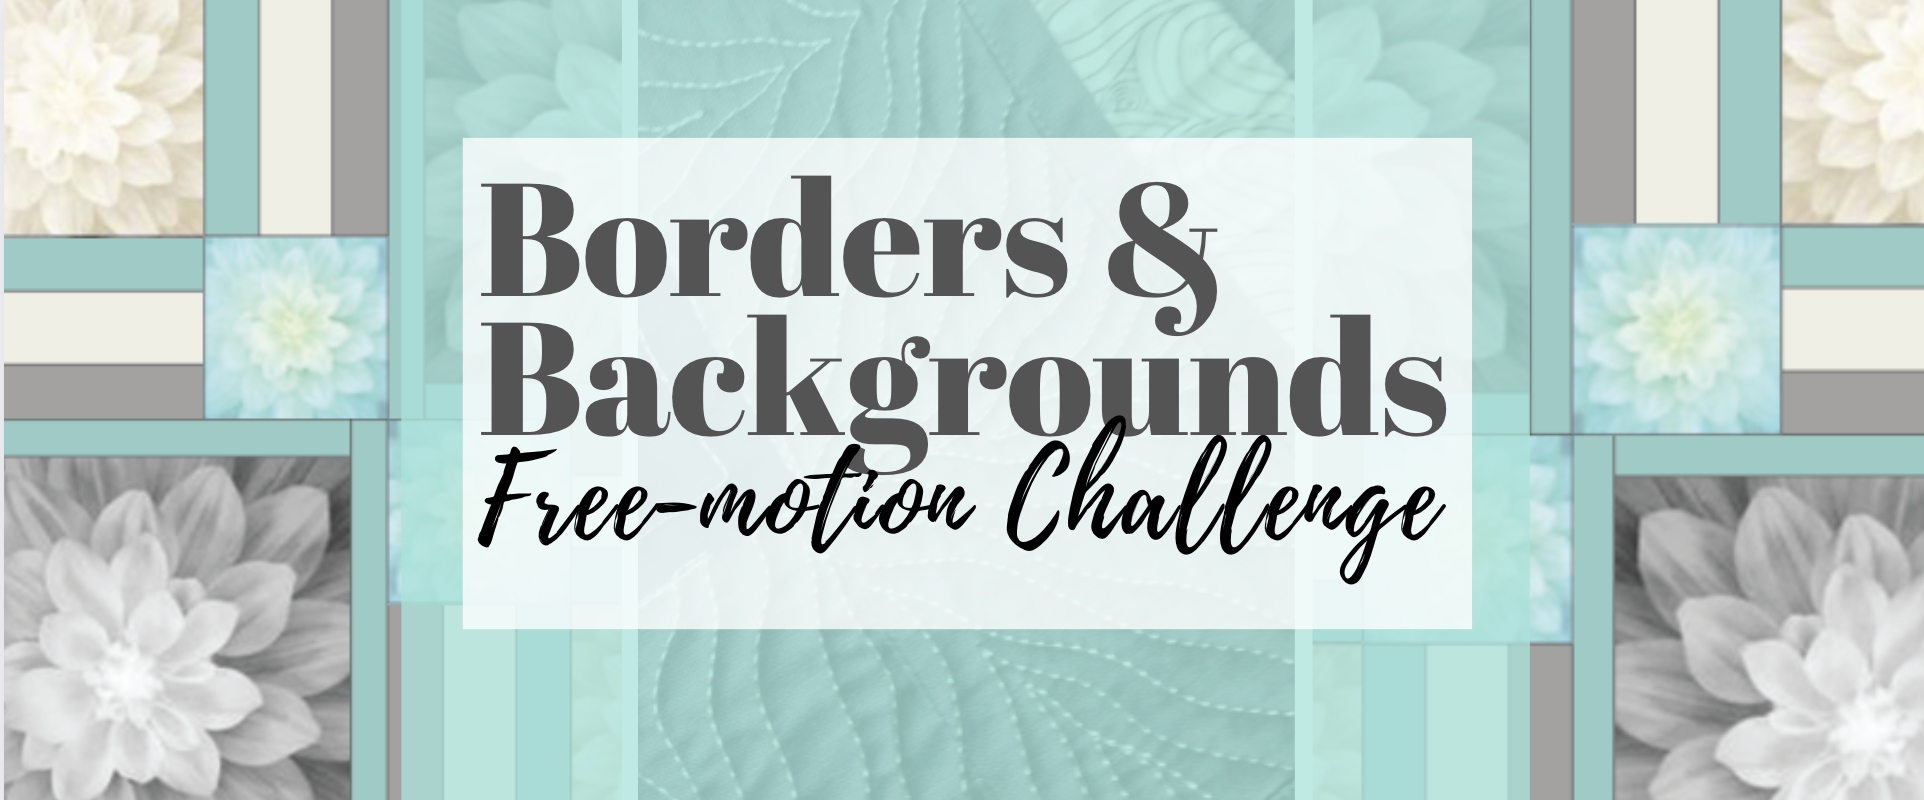 borders and backgrounds fmq challenge